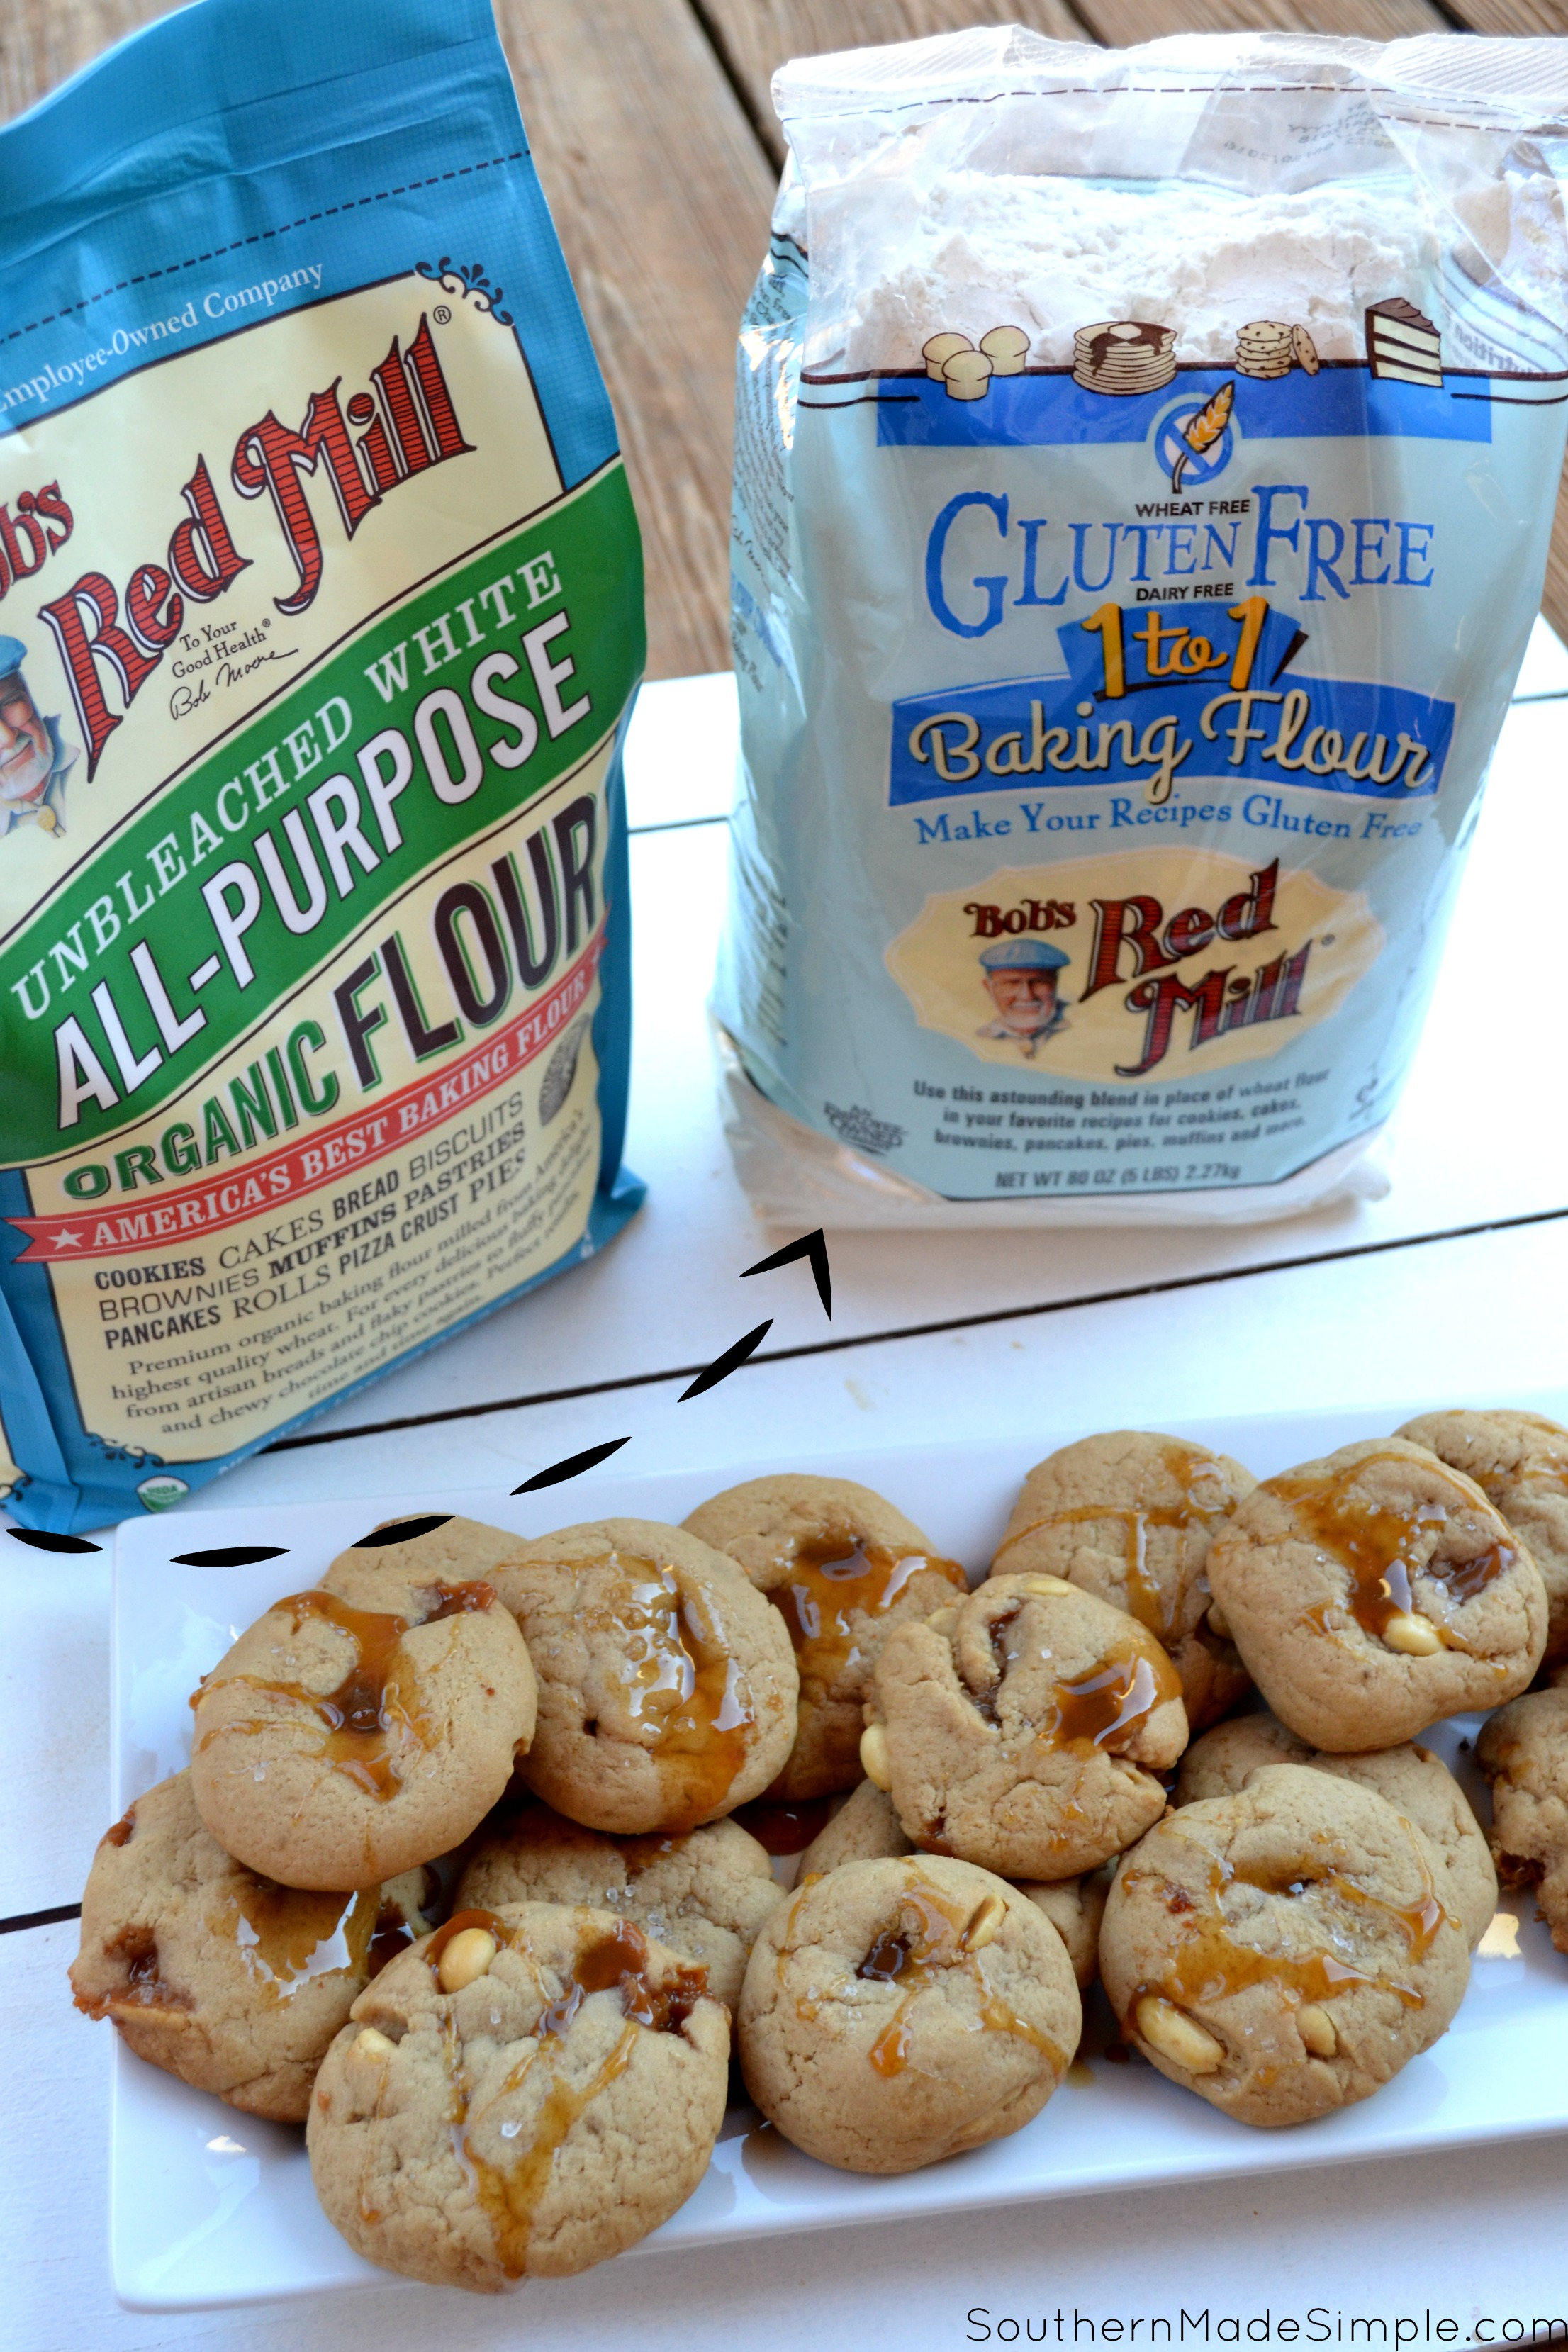 Salted Caramel Peanut Butter Cookies - Do you have a favorite food that ALWAYS makes you think of home? As an Alabama native, peanuts are king. These Salted Caramel Peanut Butter cookies represent this beautiful state so well, and they're absolutely delicious! #50StatesofCookies @bobsredmill